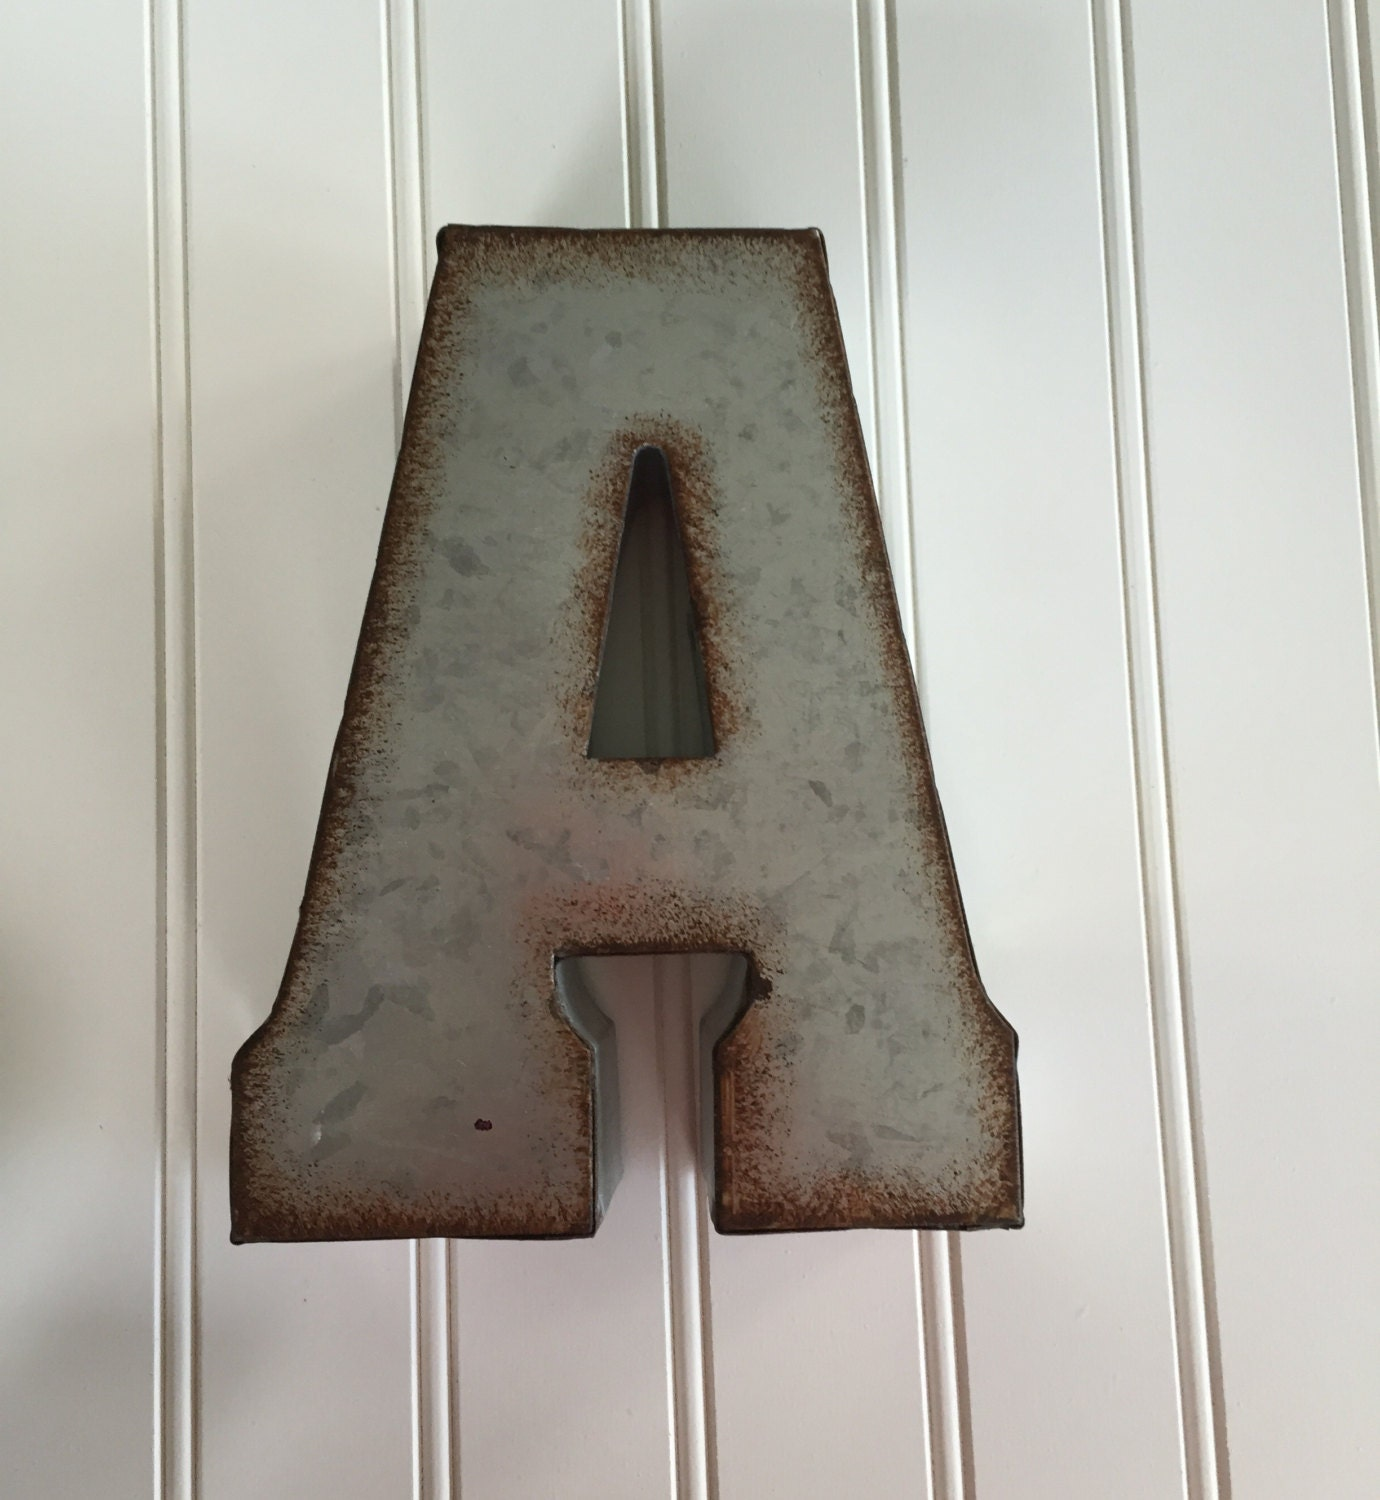 decorative letters for wall decorative metal letter wall letter sign signage rustic 21332 | il fullxfull.943005868 gelq